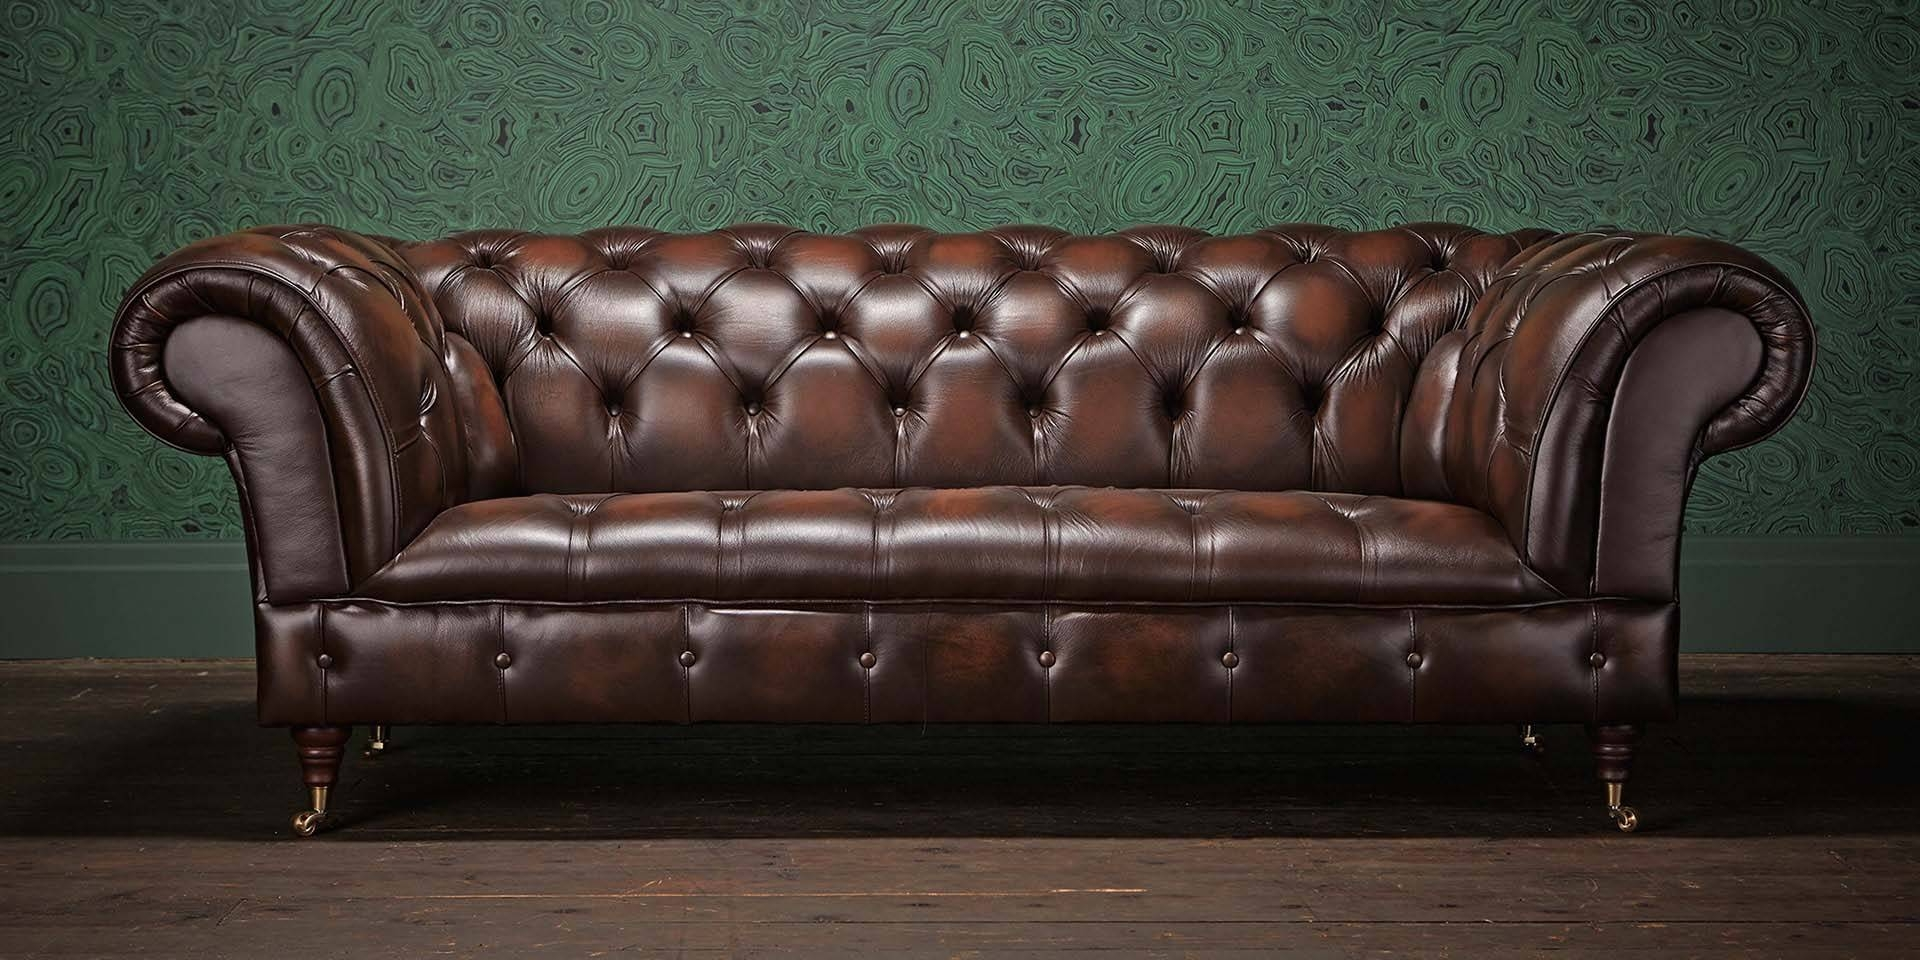 Popular Photo of Chesterfield Sofas